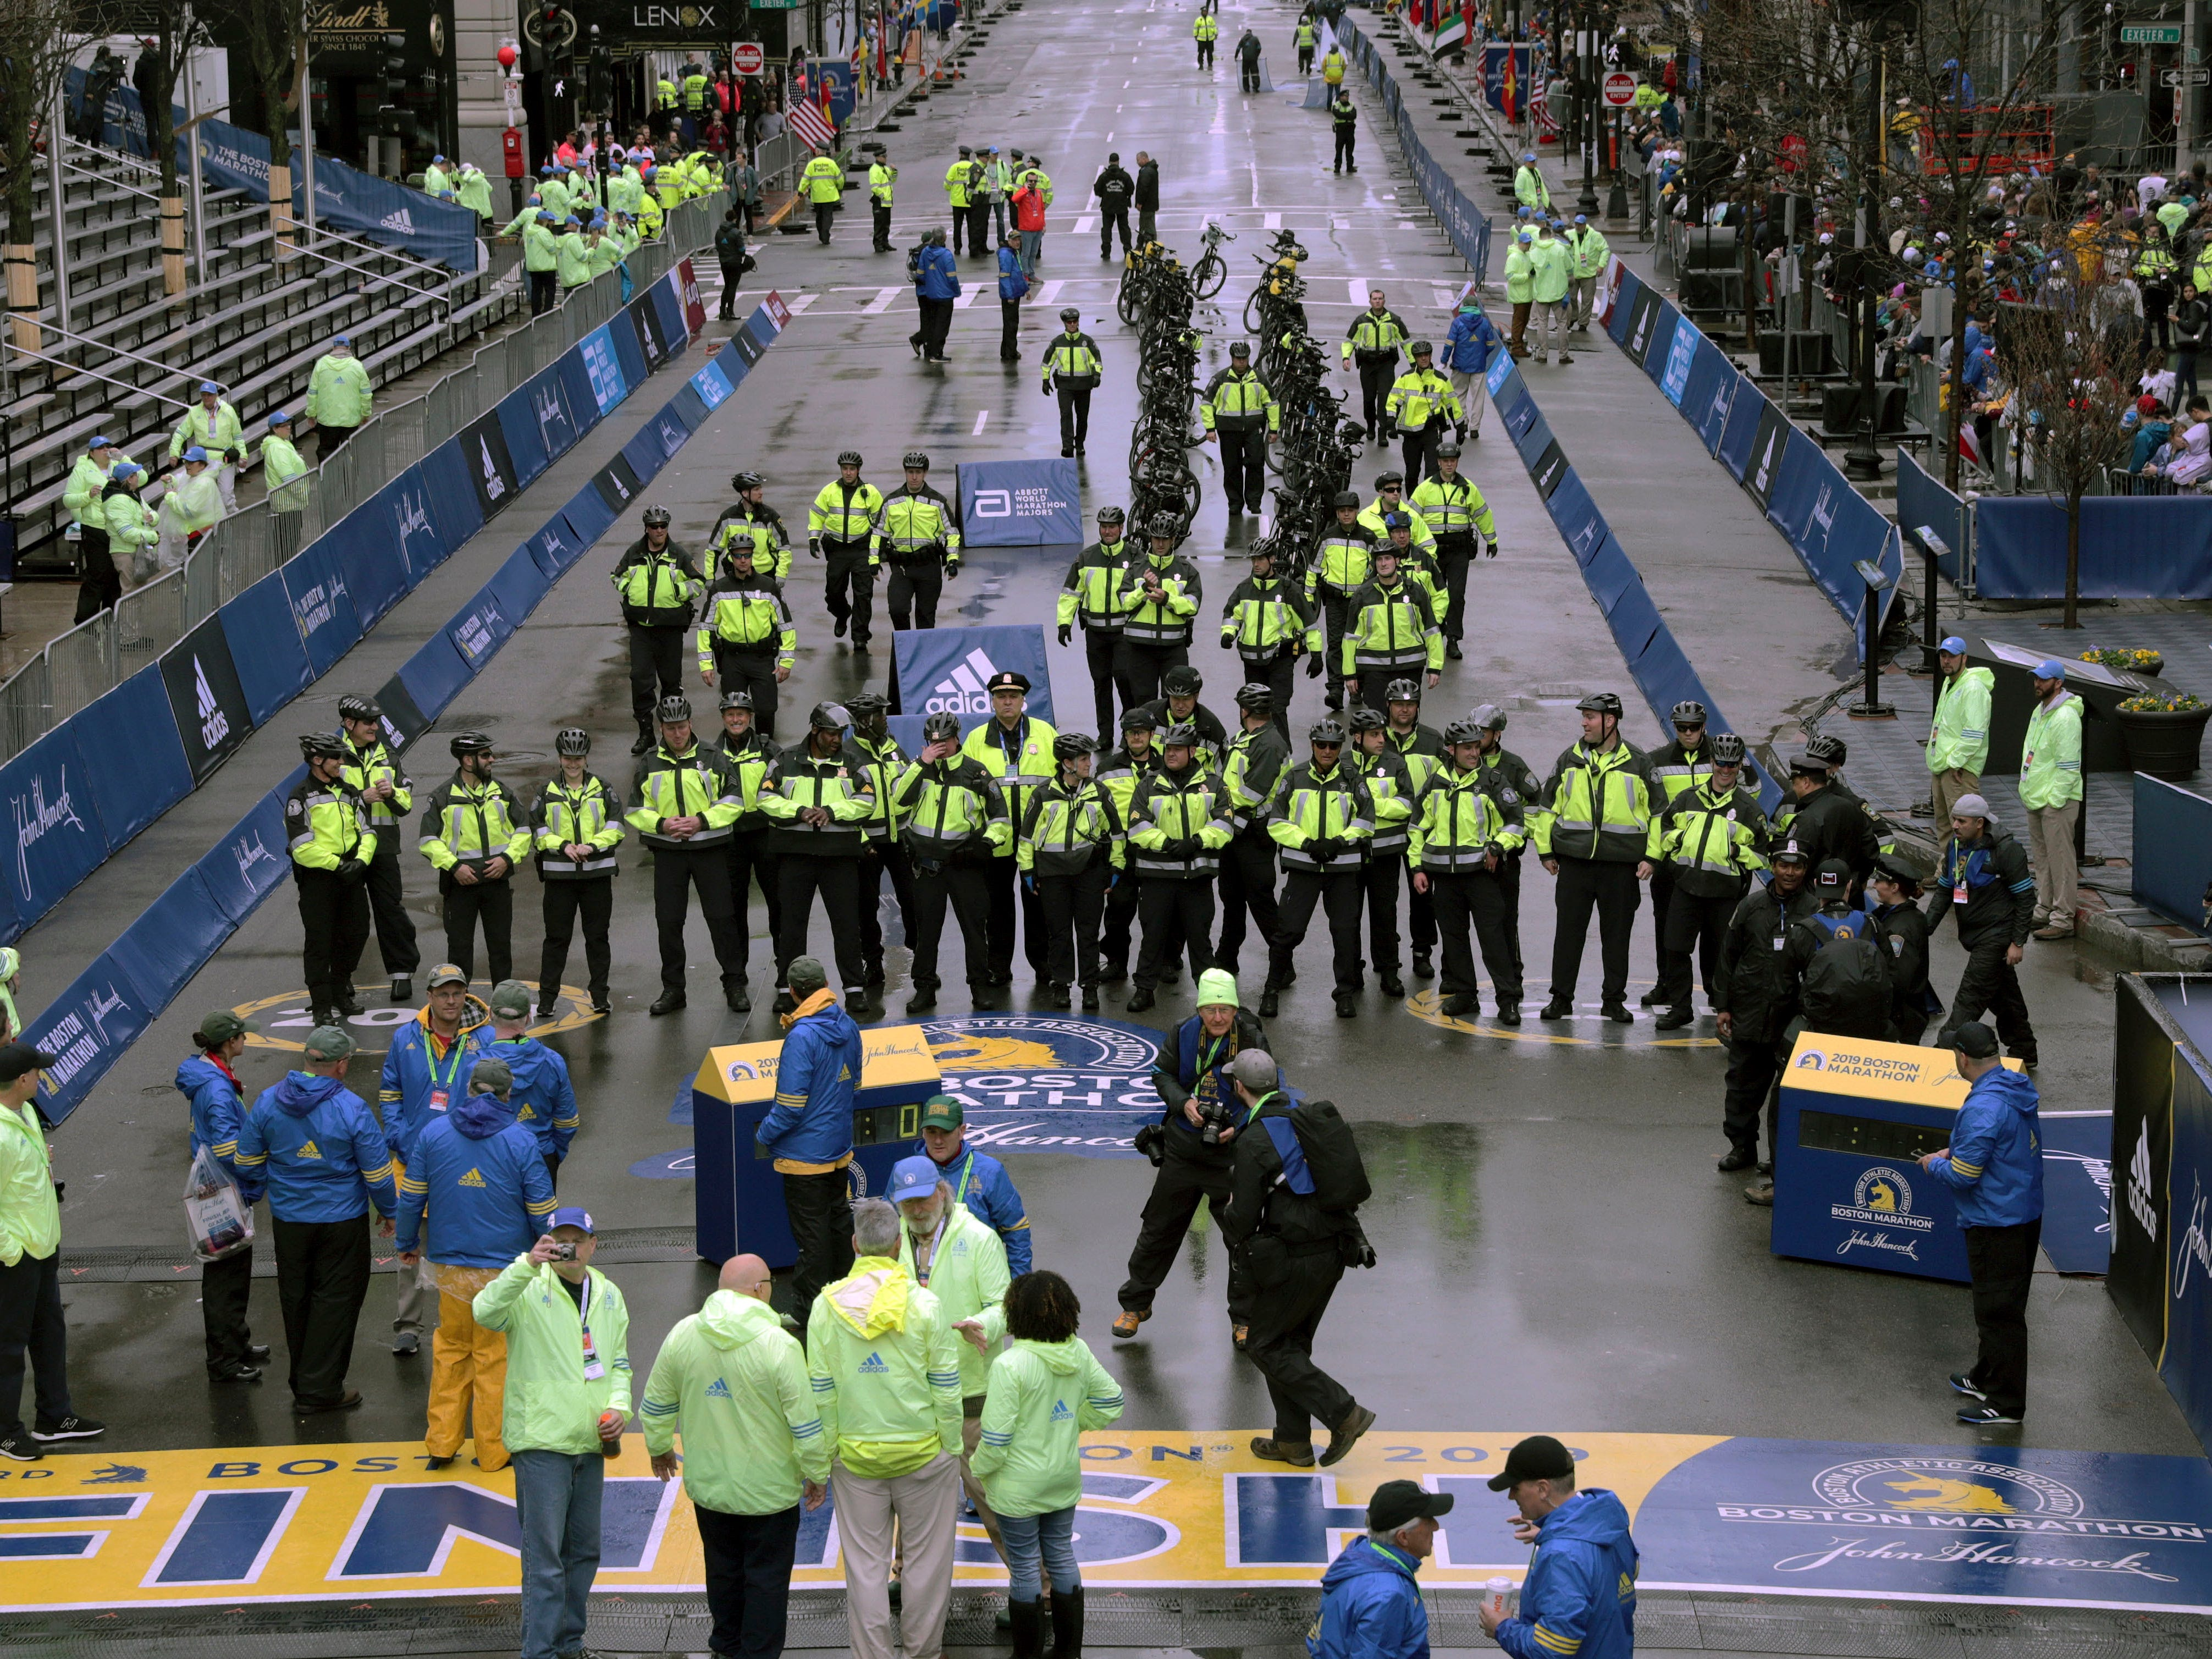 Police officers at the finish line before the start of the 123rd Boston Marathon.